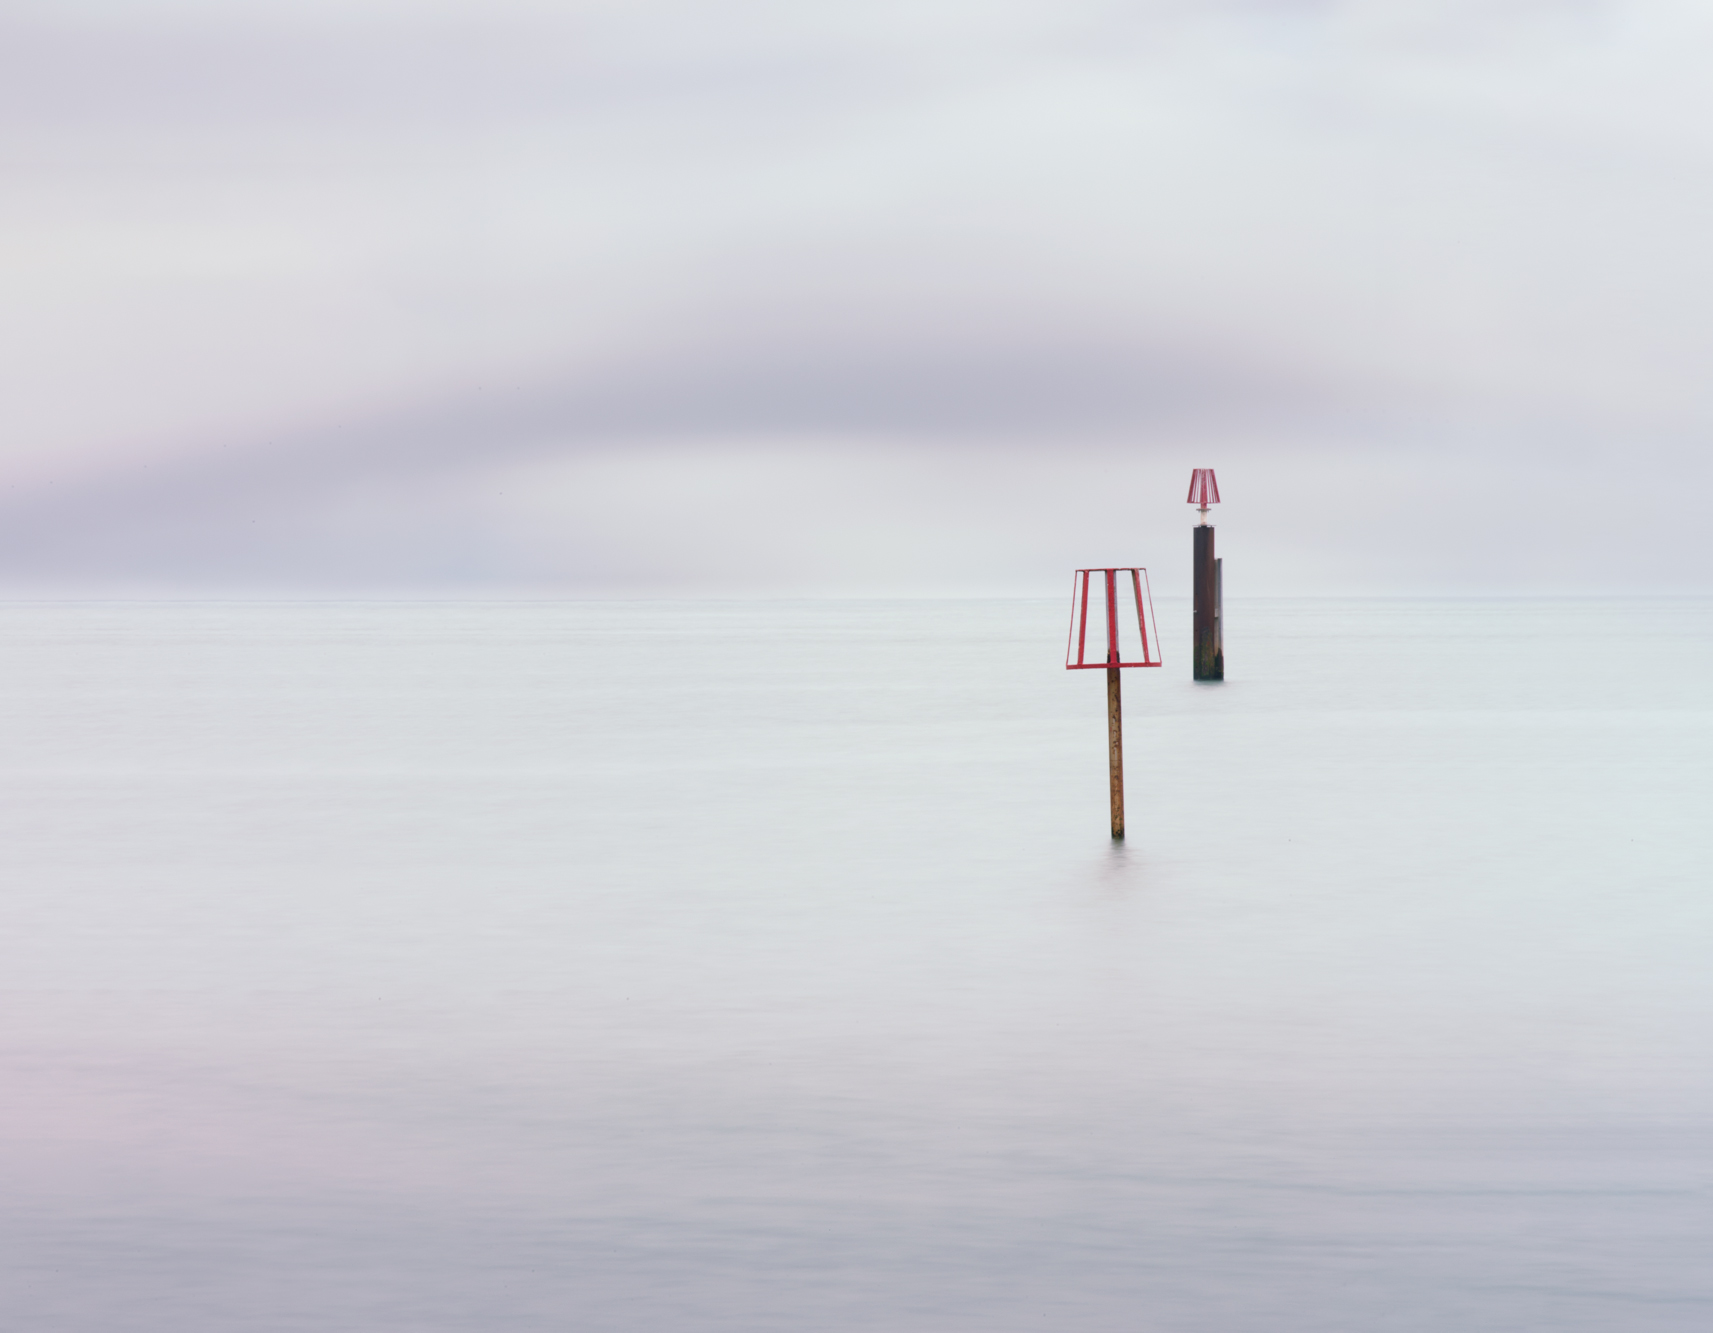 minimal long exposure photograph of two posts in the ocean at sunset in the UK